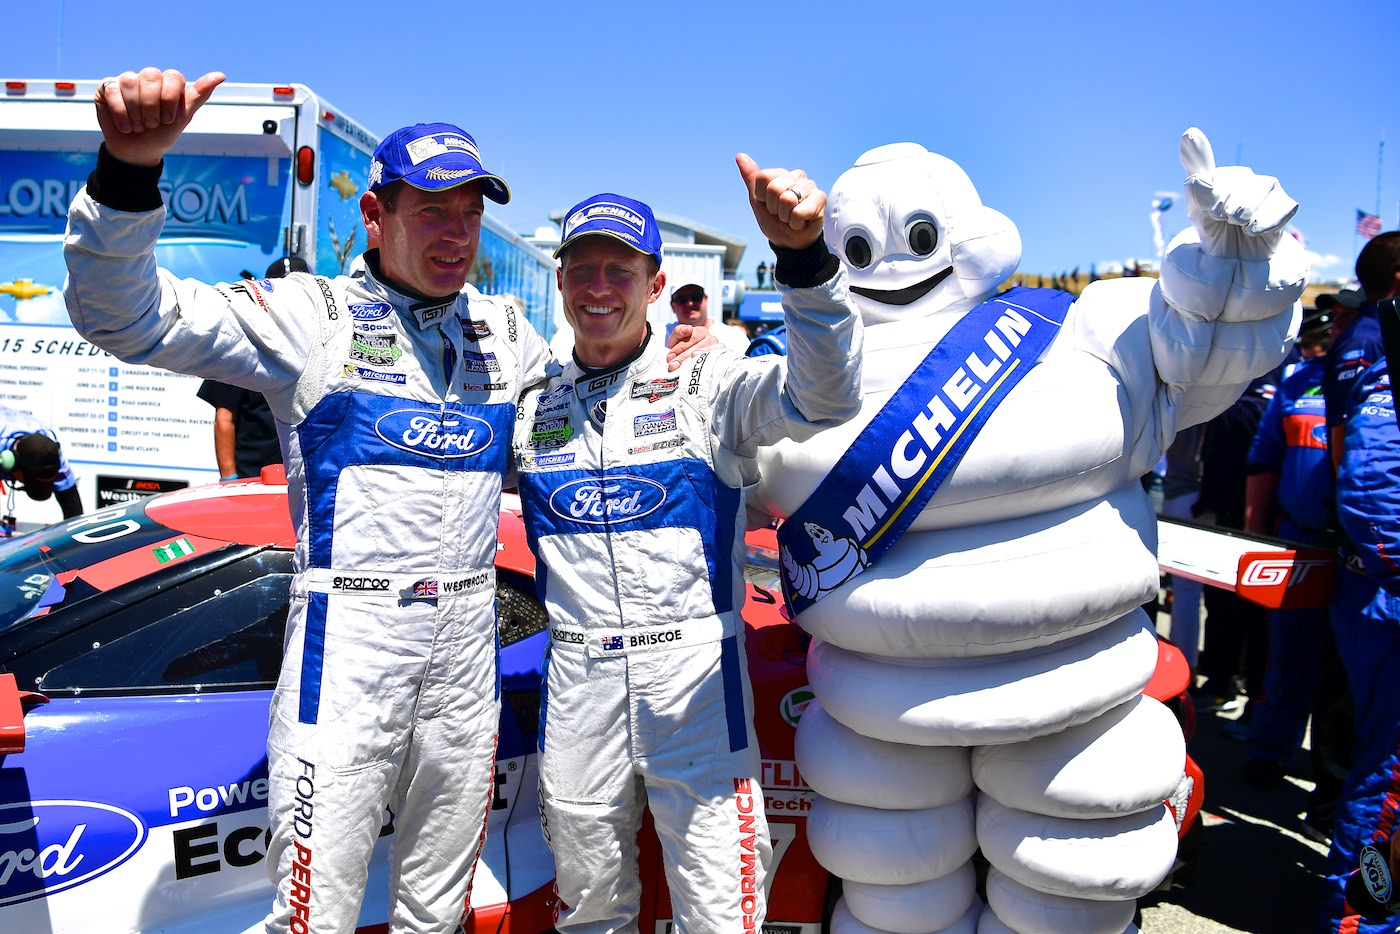 Ford takes first victory with the new GT